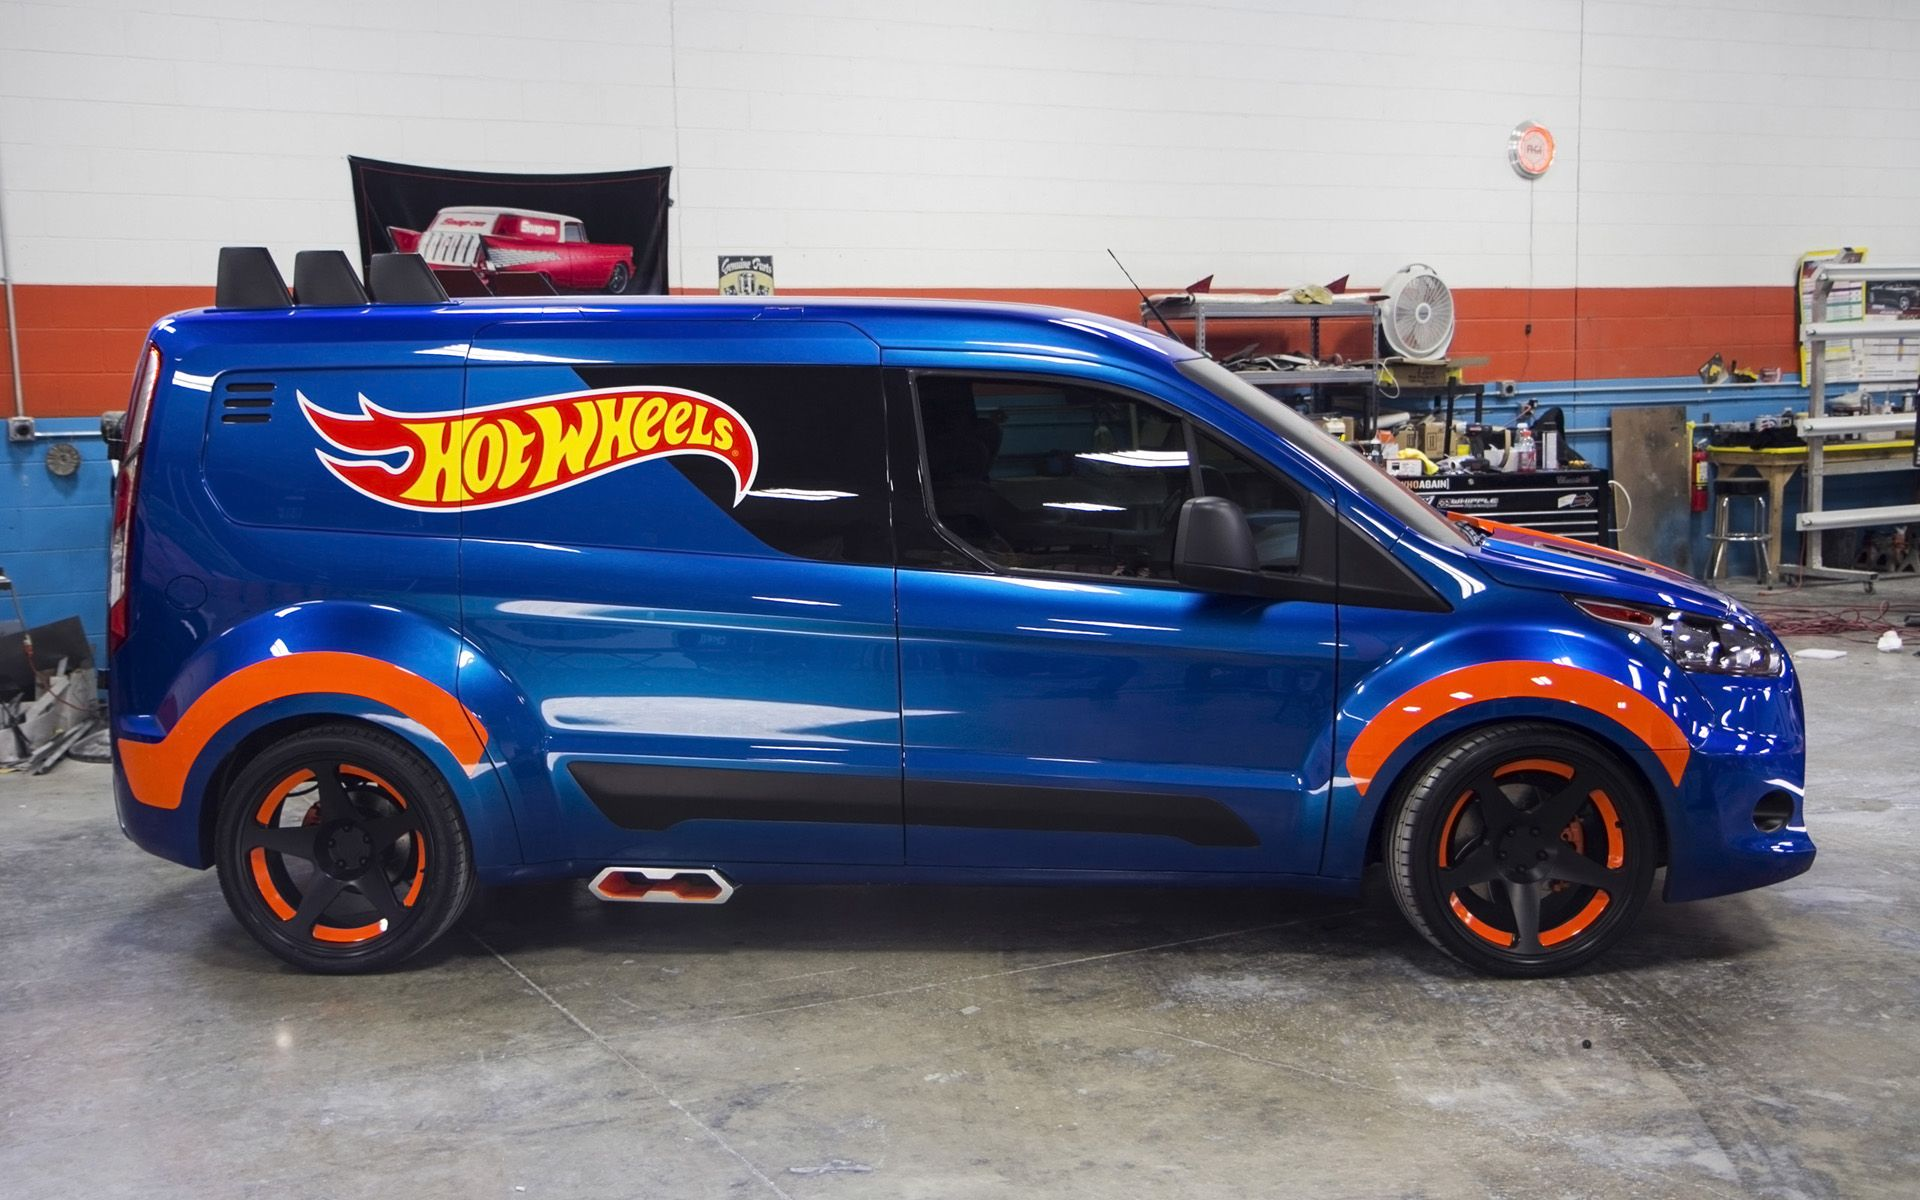 2014 Ford Transit Connect Hot Wheels Concept Static 7 1920x1200 Jpg 1920 1200 Ford Transit Hot Wheels Mini Van